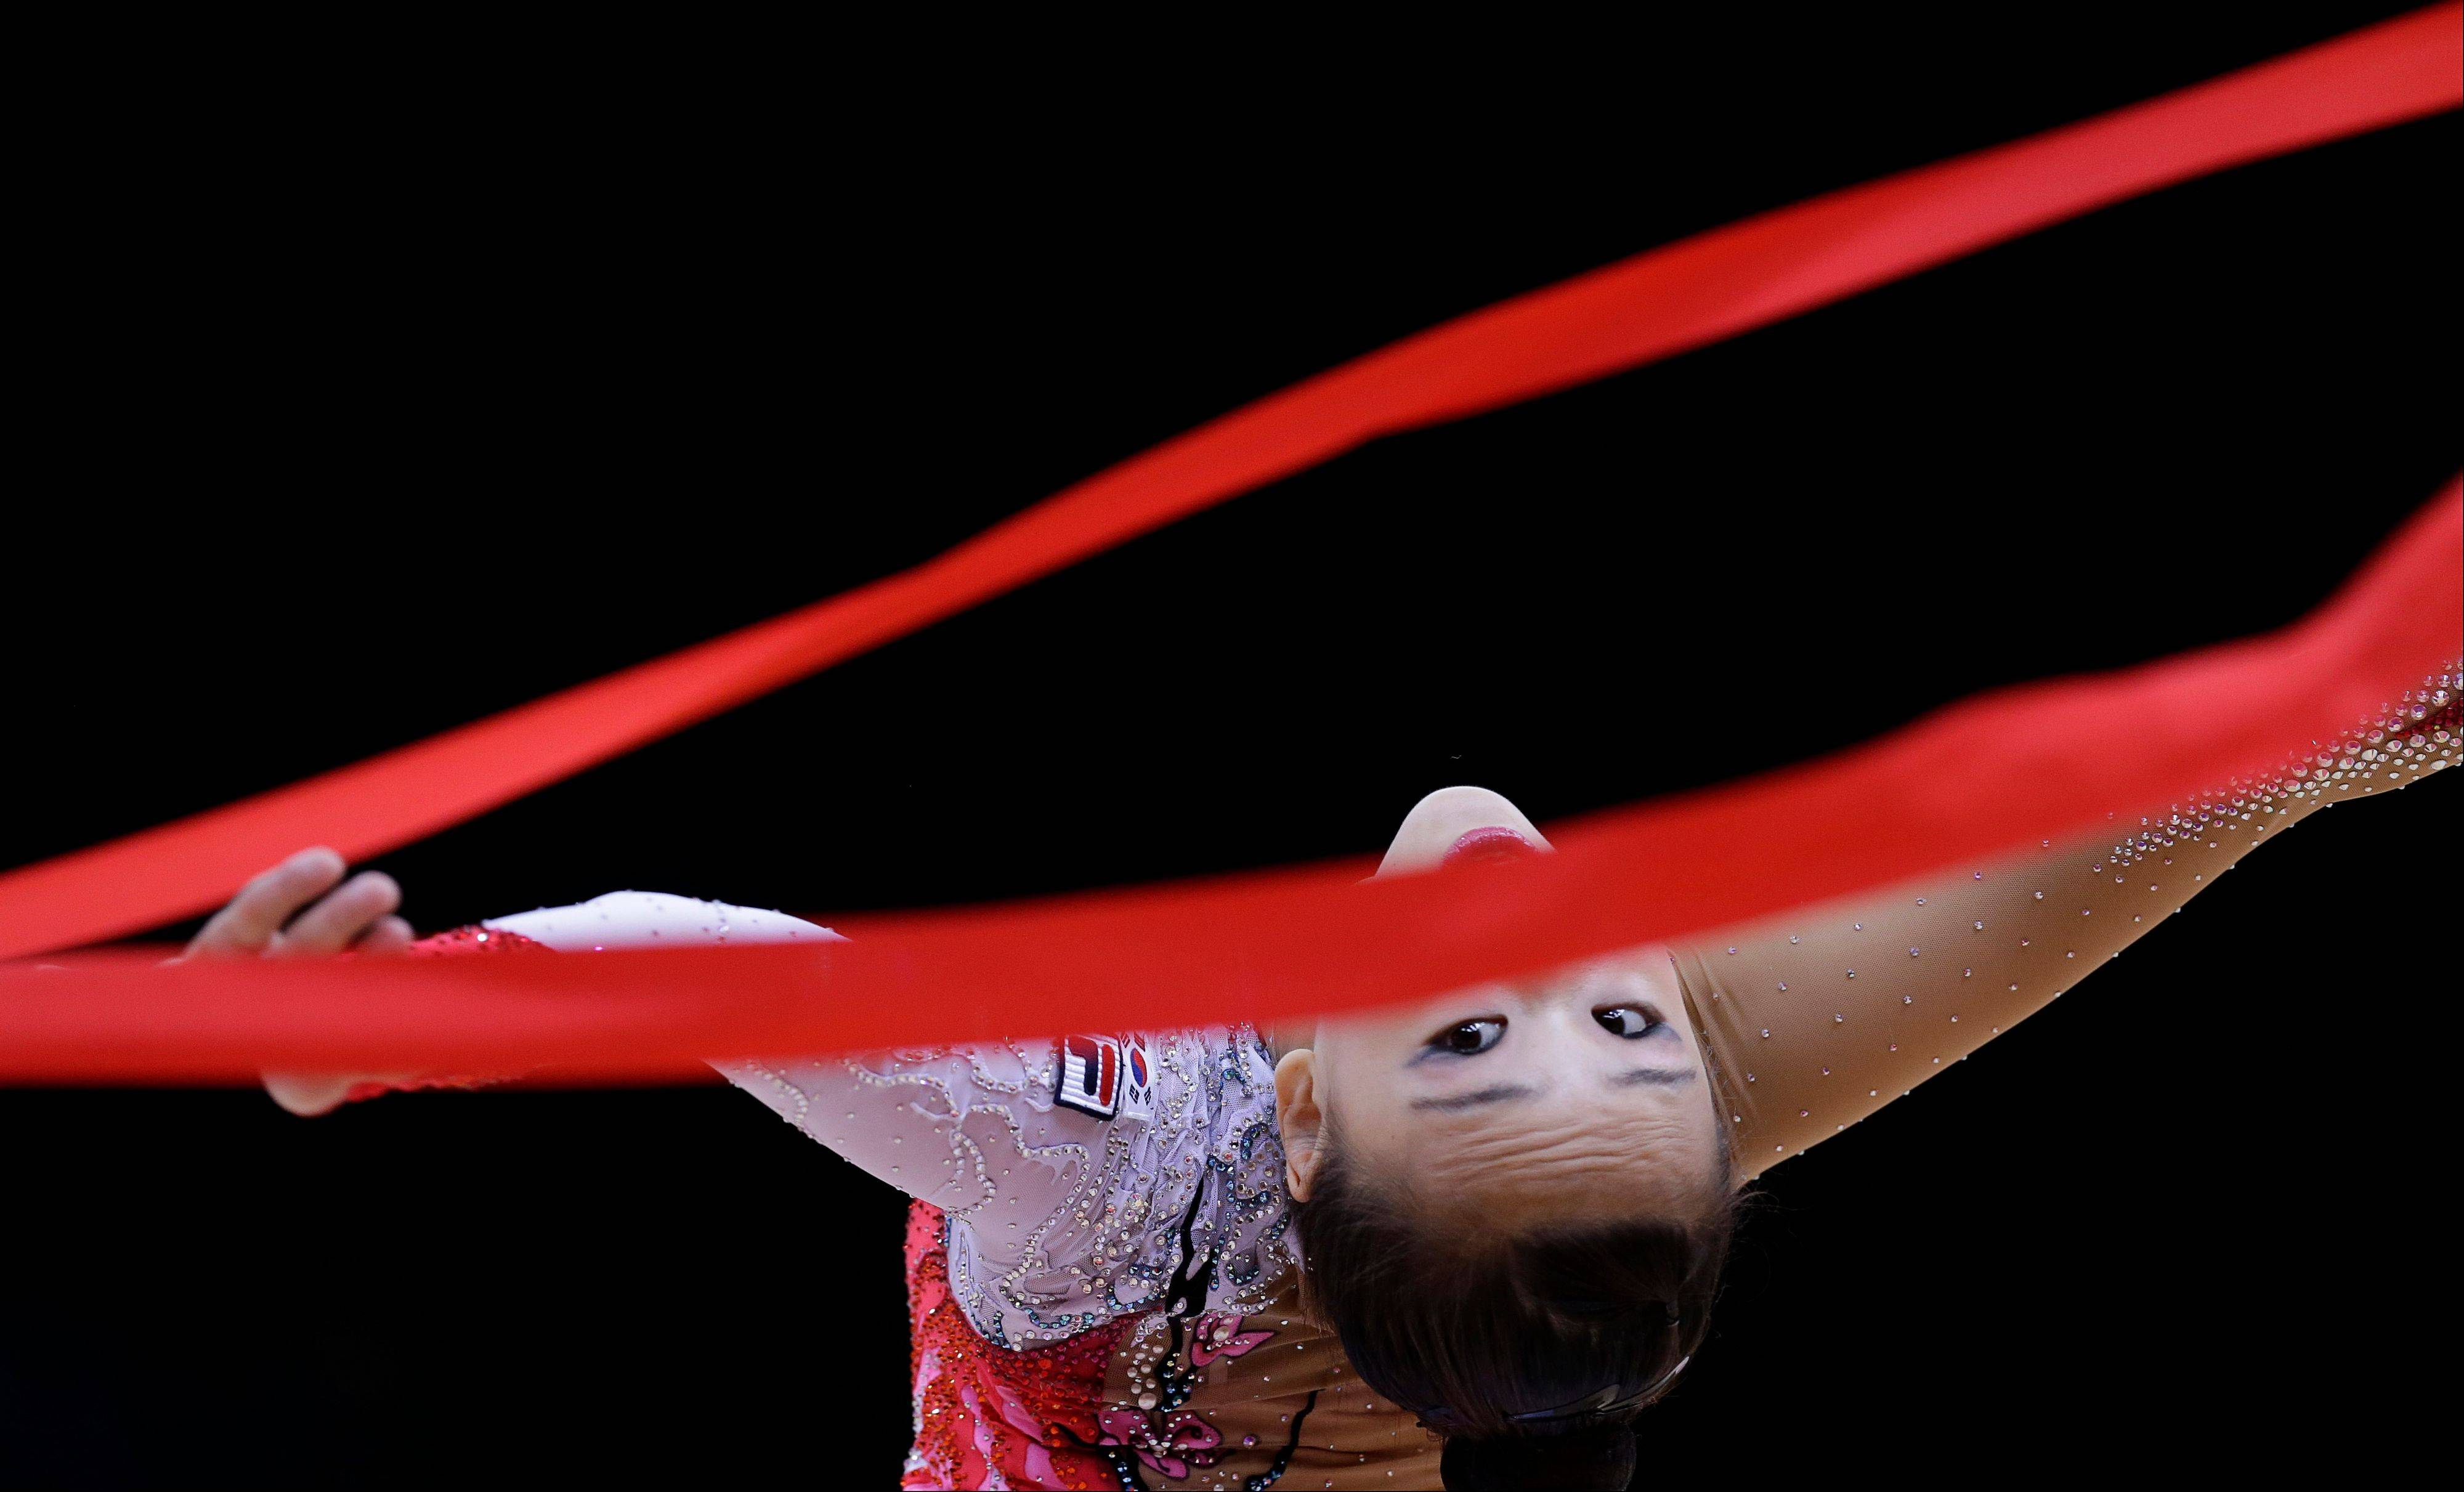 South Korea's Son Yeon-jae performs during the rhythmic gymnastics individual all-around qualifications at the 2012 Summer Olympics, Friday, Aug. 10, 2012, in London.